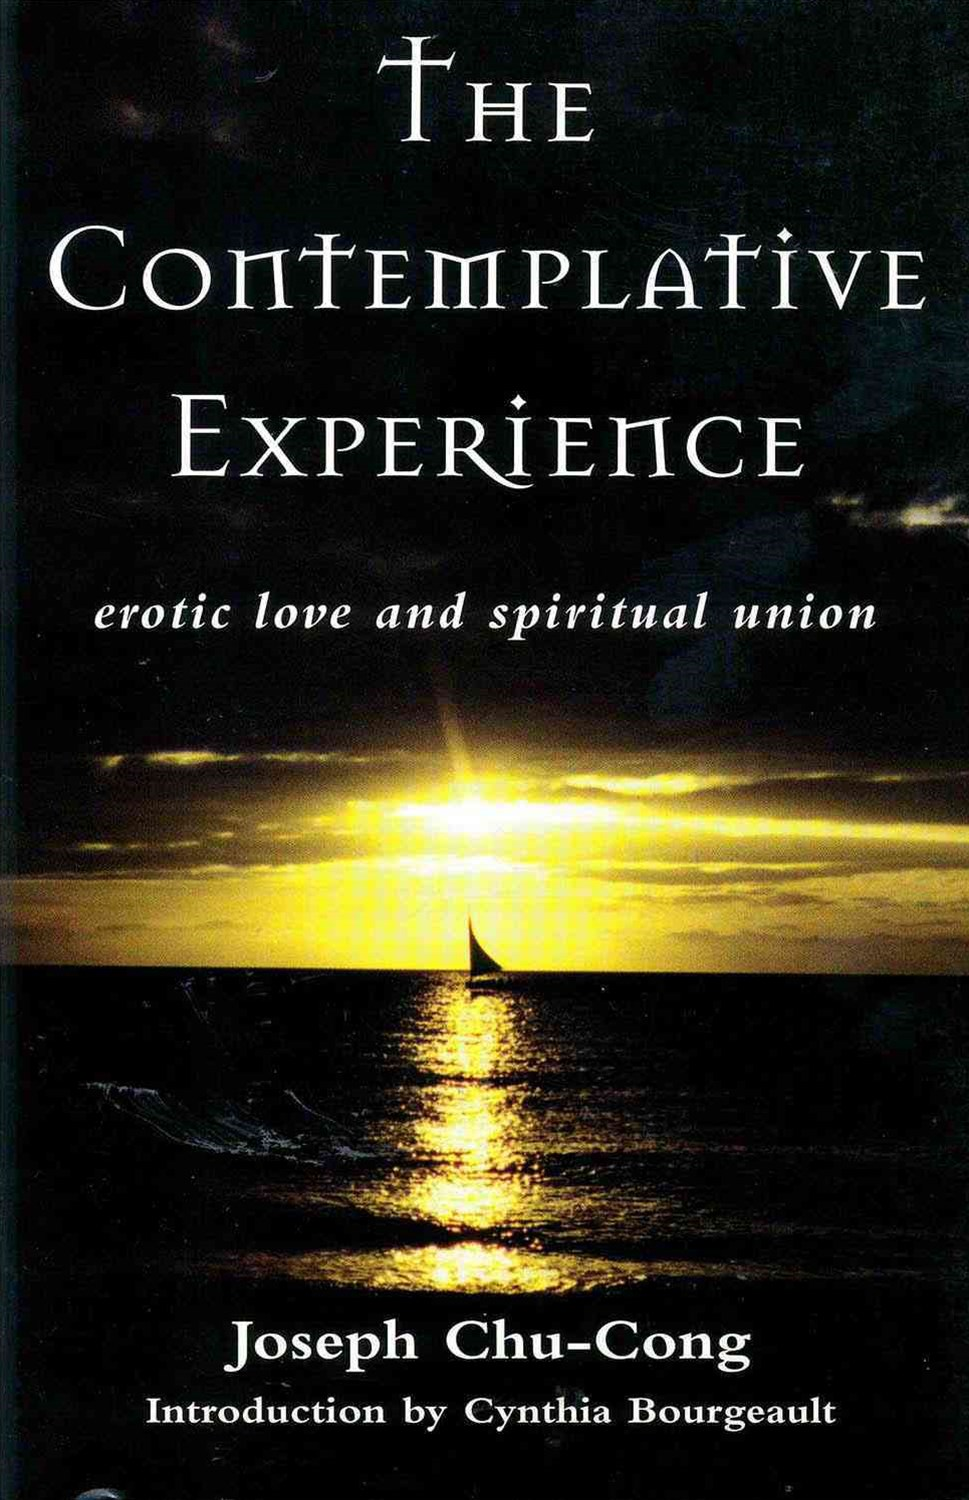 The Contemplative Experience